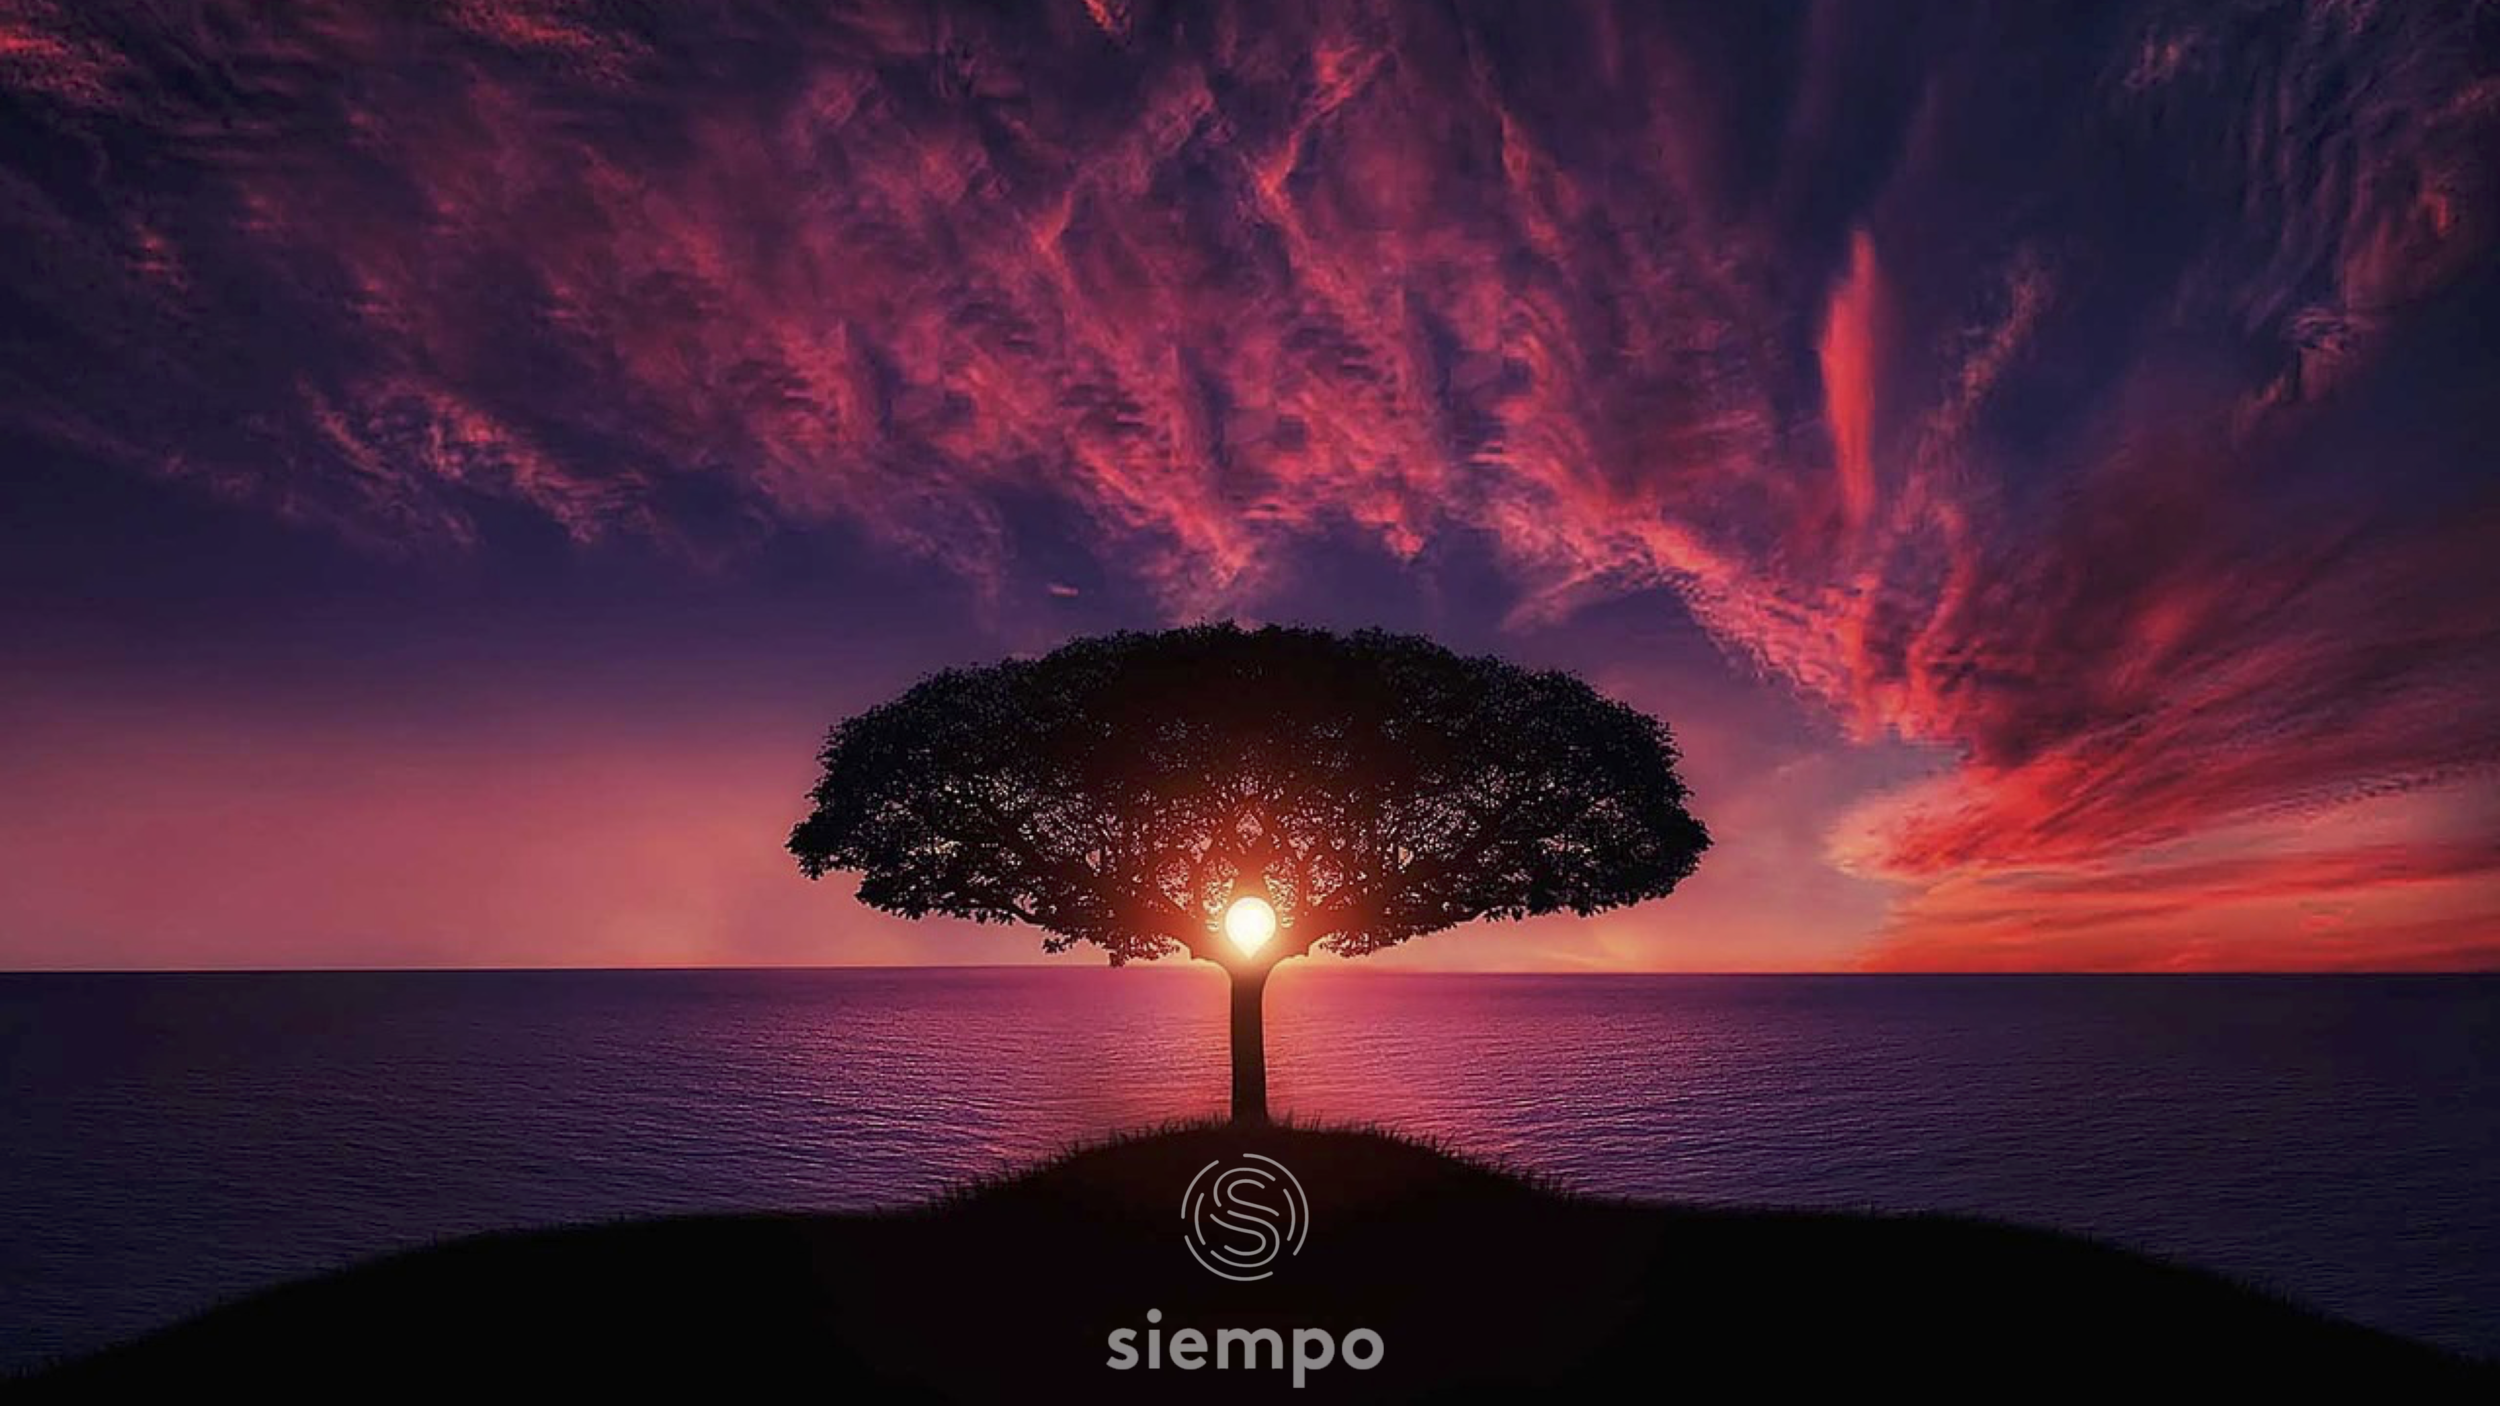 """An image of a lone tree with a sunset behind it and a large body of water reflecting the sunset. """"Siempo"""" is written along the bottom."""